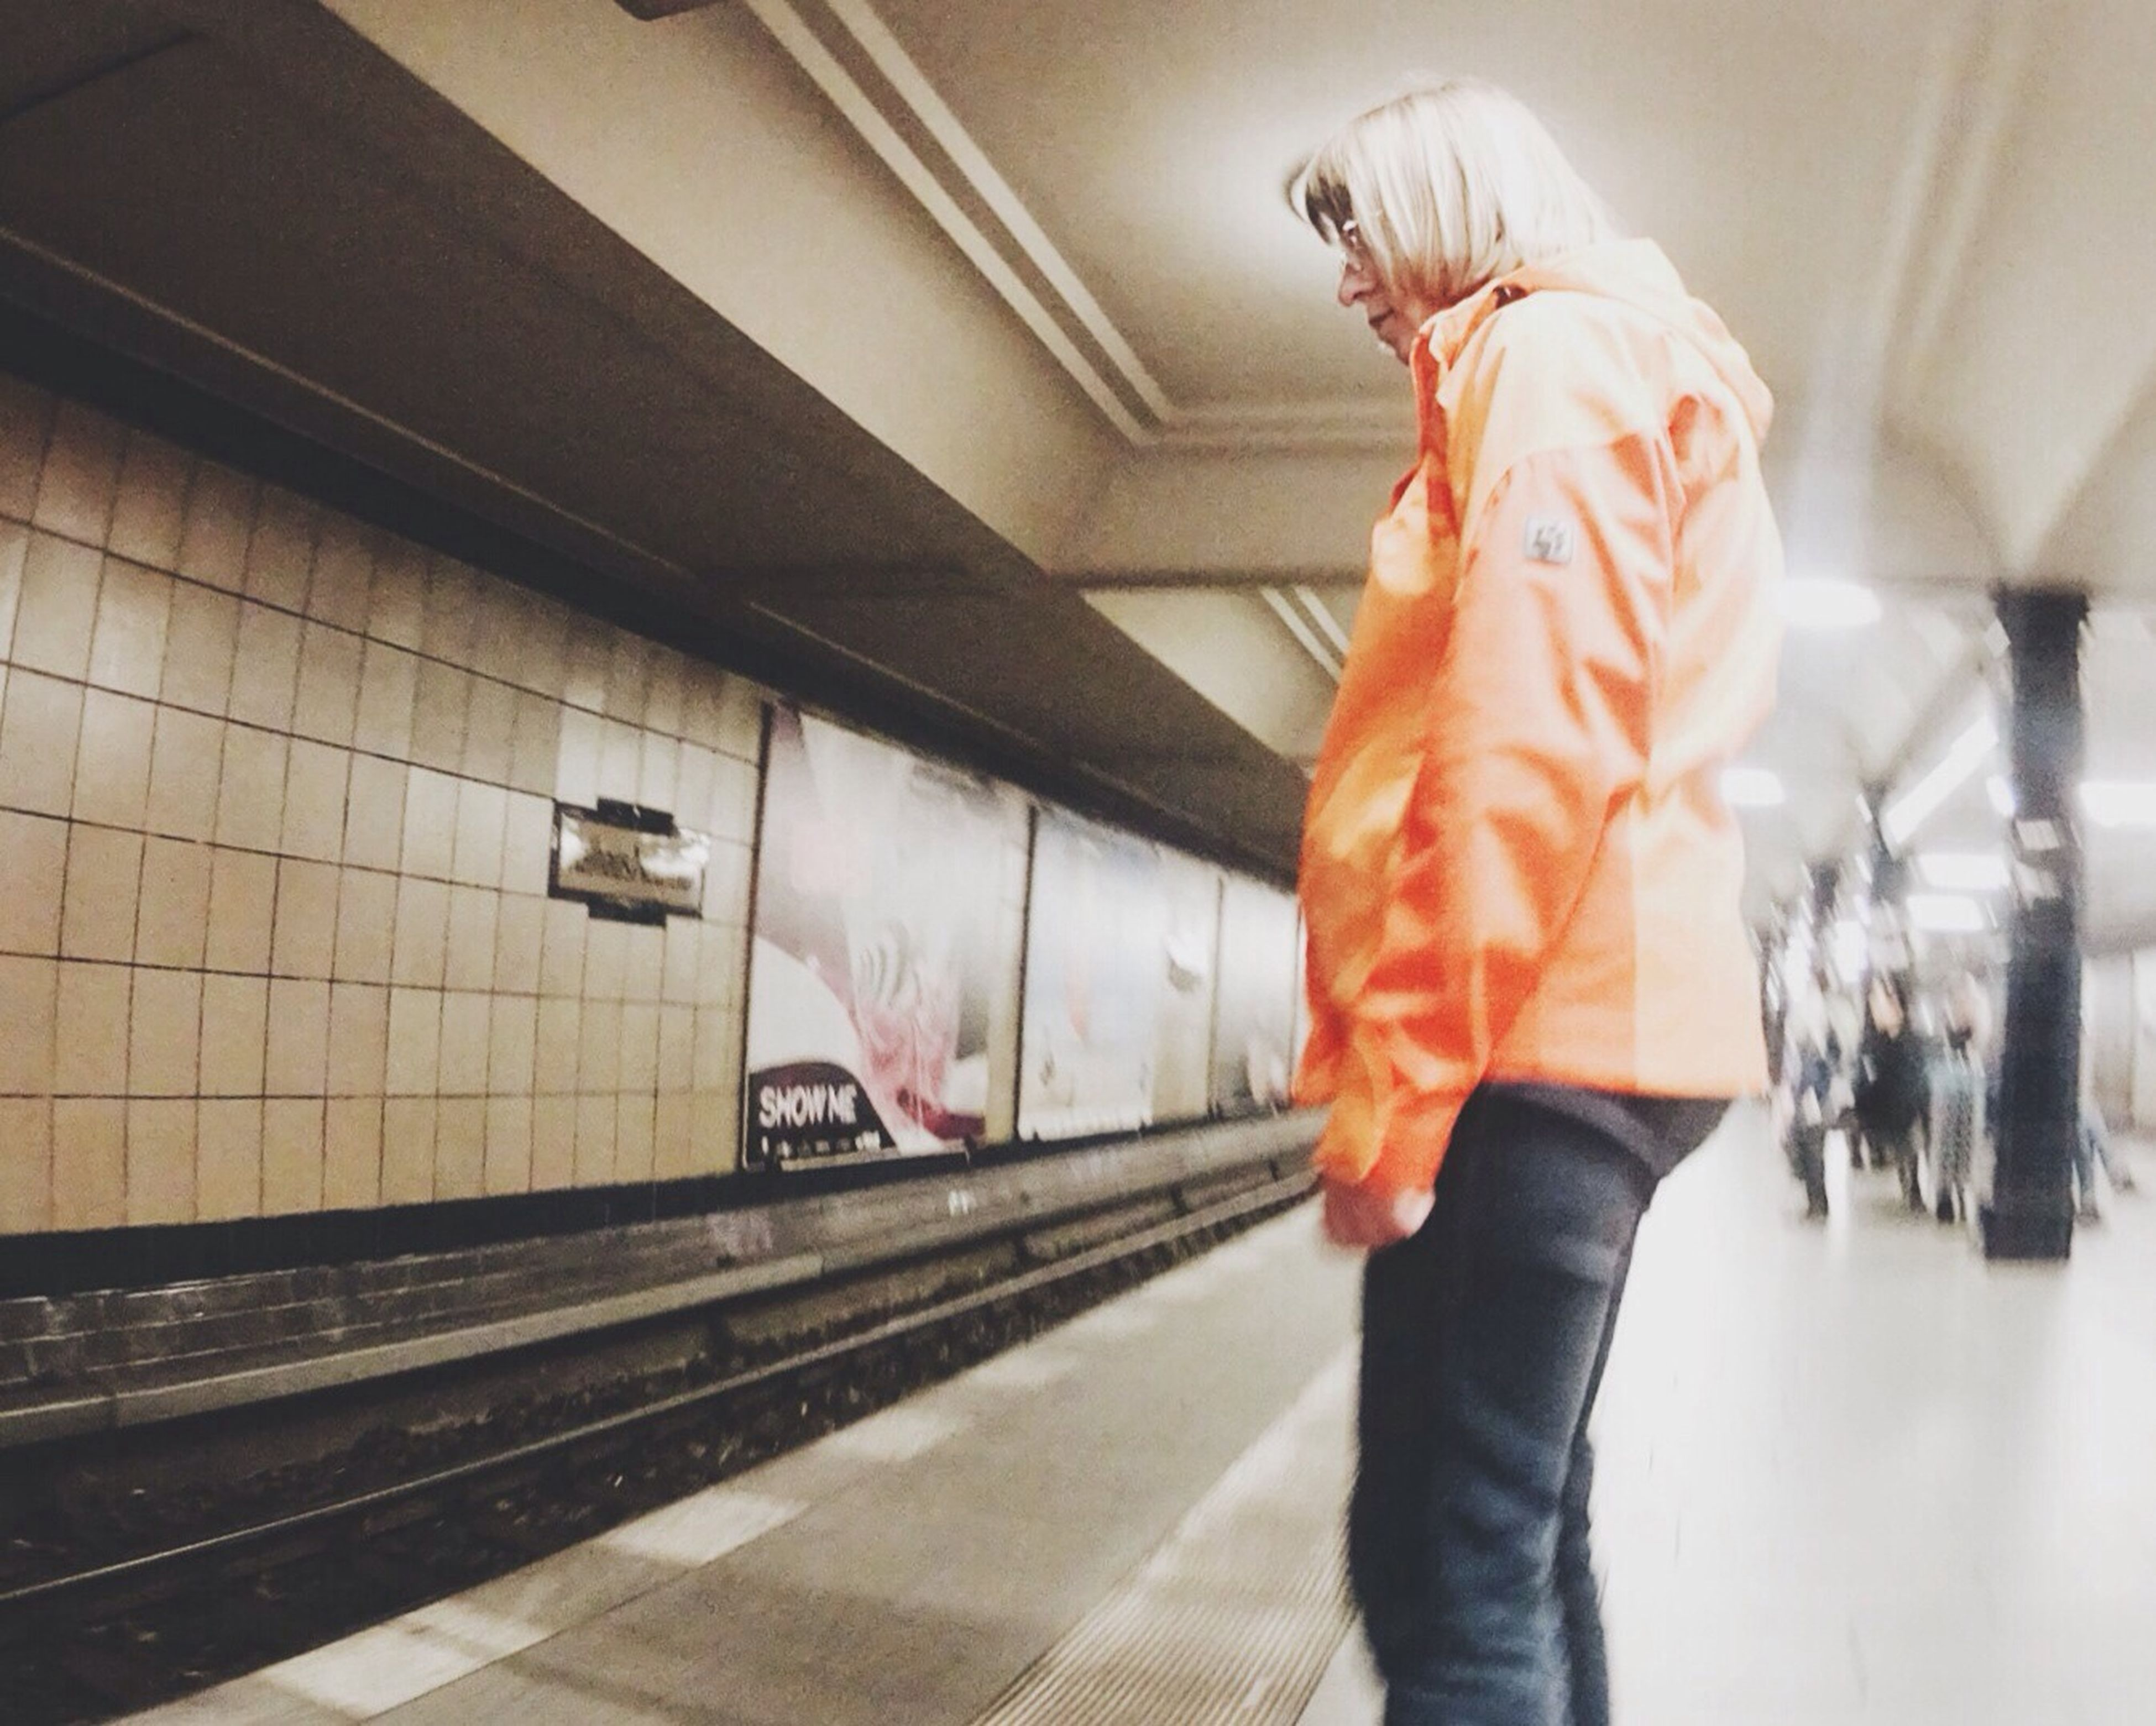 indoors, lifestyles, men, person, leisure activity, standing, walking, architecture, low section, blurred motion, built structure, casual clothing, rear view, full length, incidental people, transportation, unrecognizable person, wall - building feature